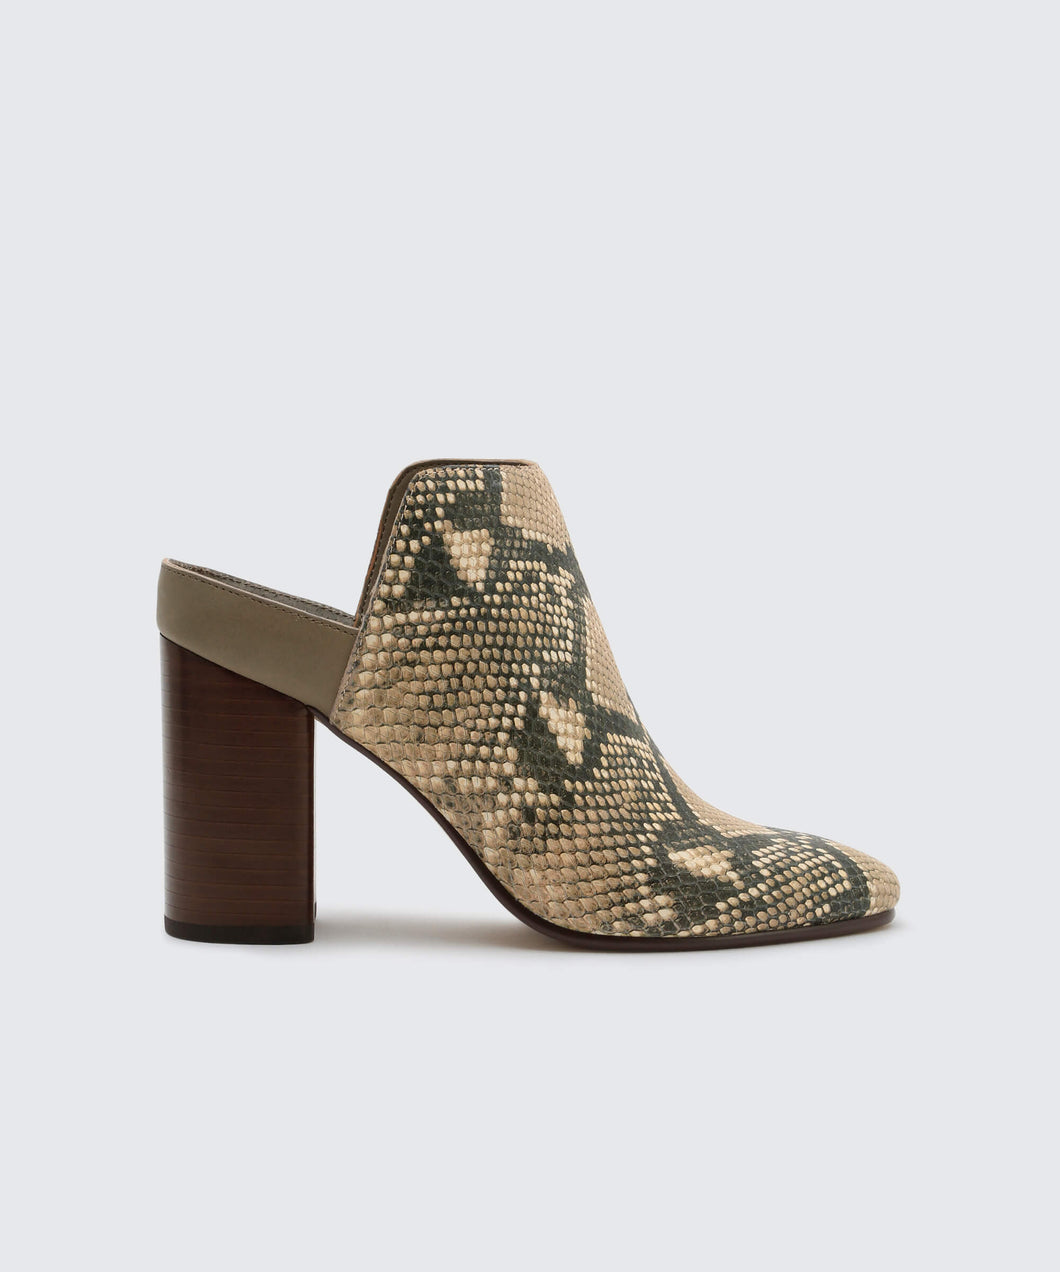 RENLY BOOTIES SNAKE -   Dolce Vita